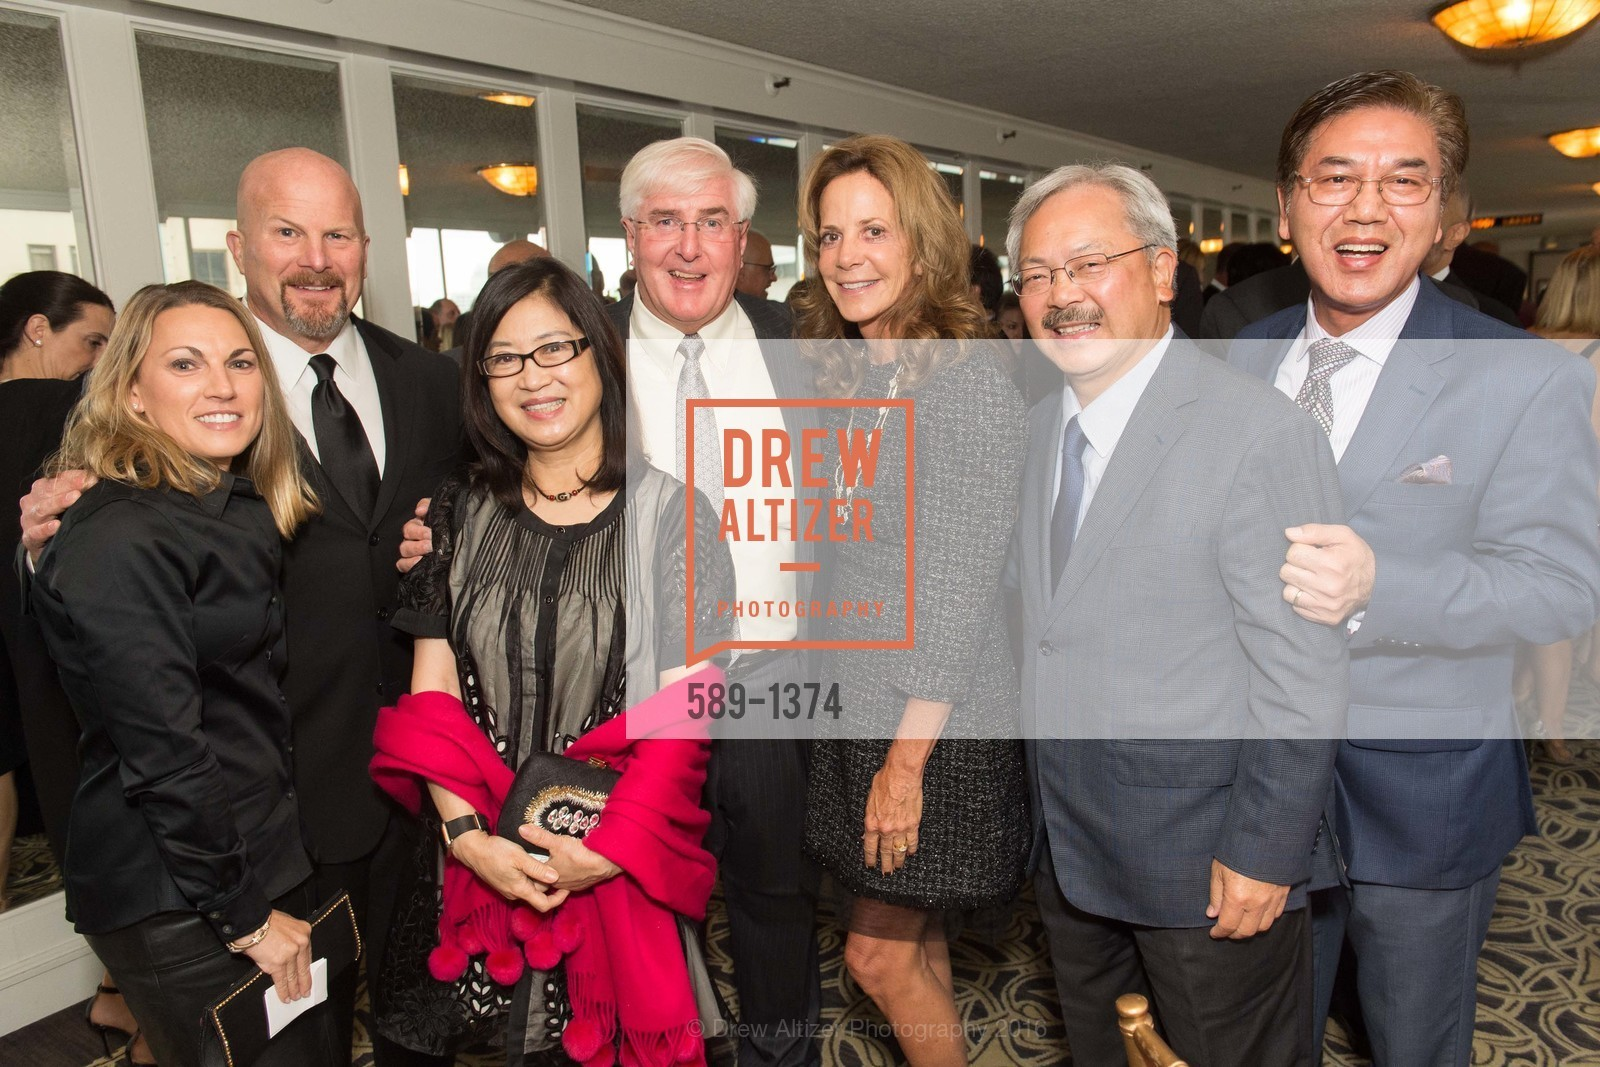 Sharon Suhr, Greg Suhr, Anita Lee, Ron Conway, Gayle Conway, Ed Lee, Paul Tansanich, Photo #589-1374